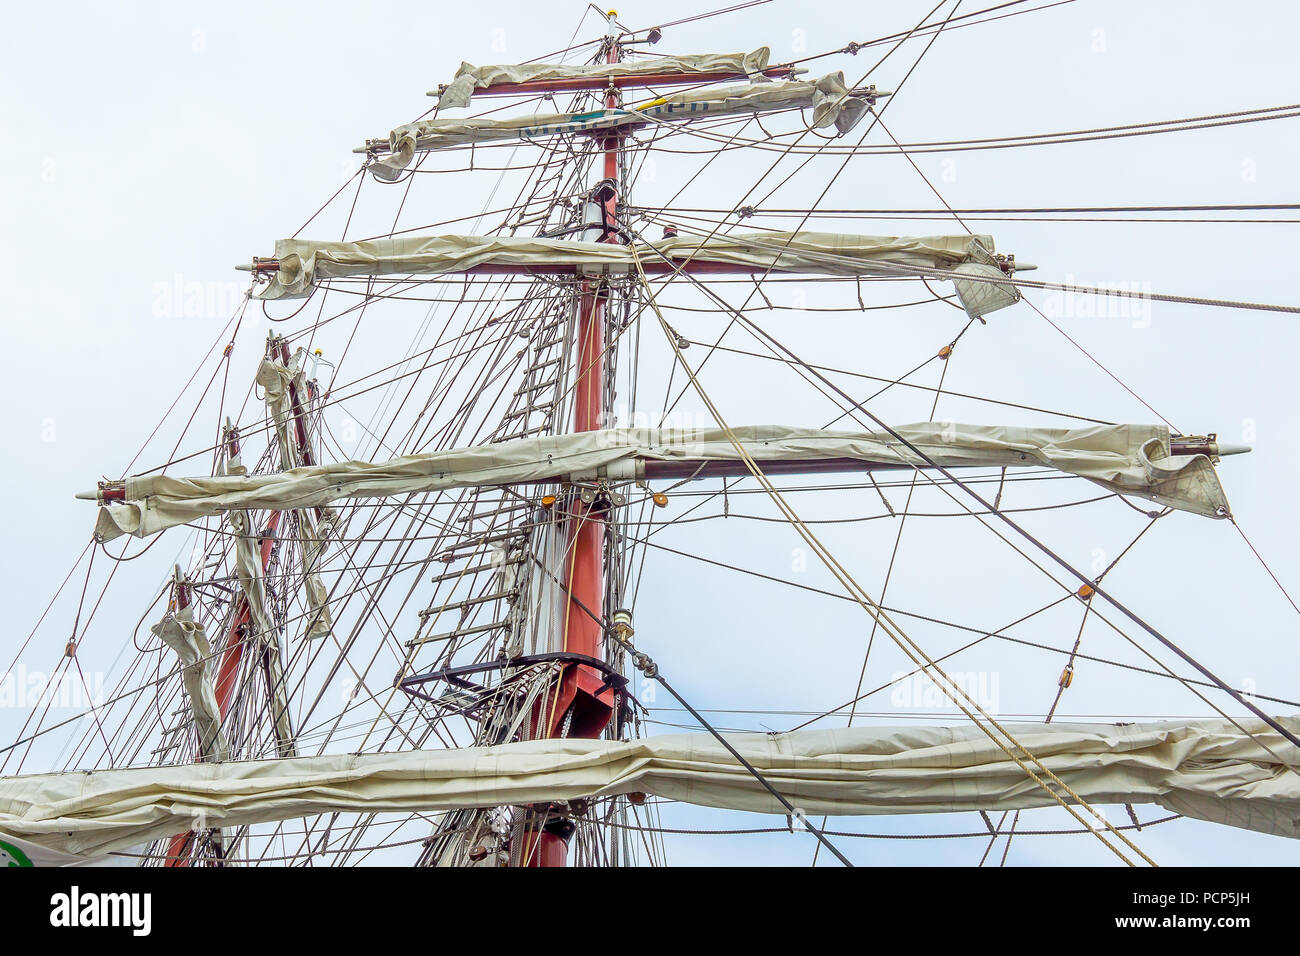 The rigging of the brig Aphrodite, foreamast and mainmast with rotated yards, Hundested, Denmark, July 31, 2018 - Stock Image